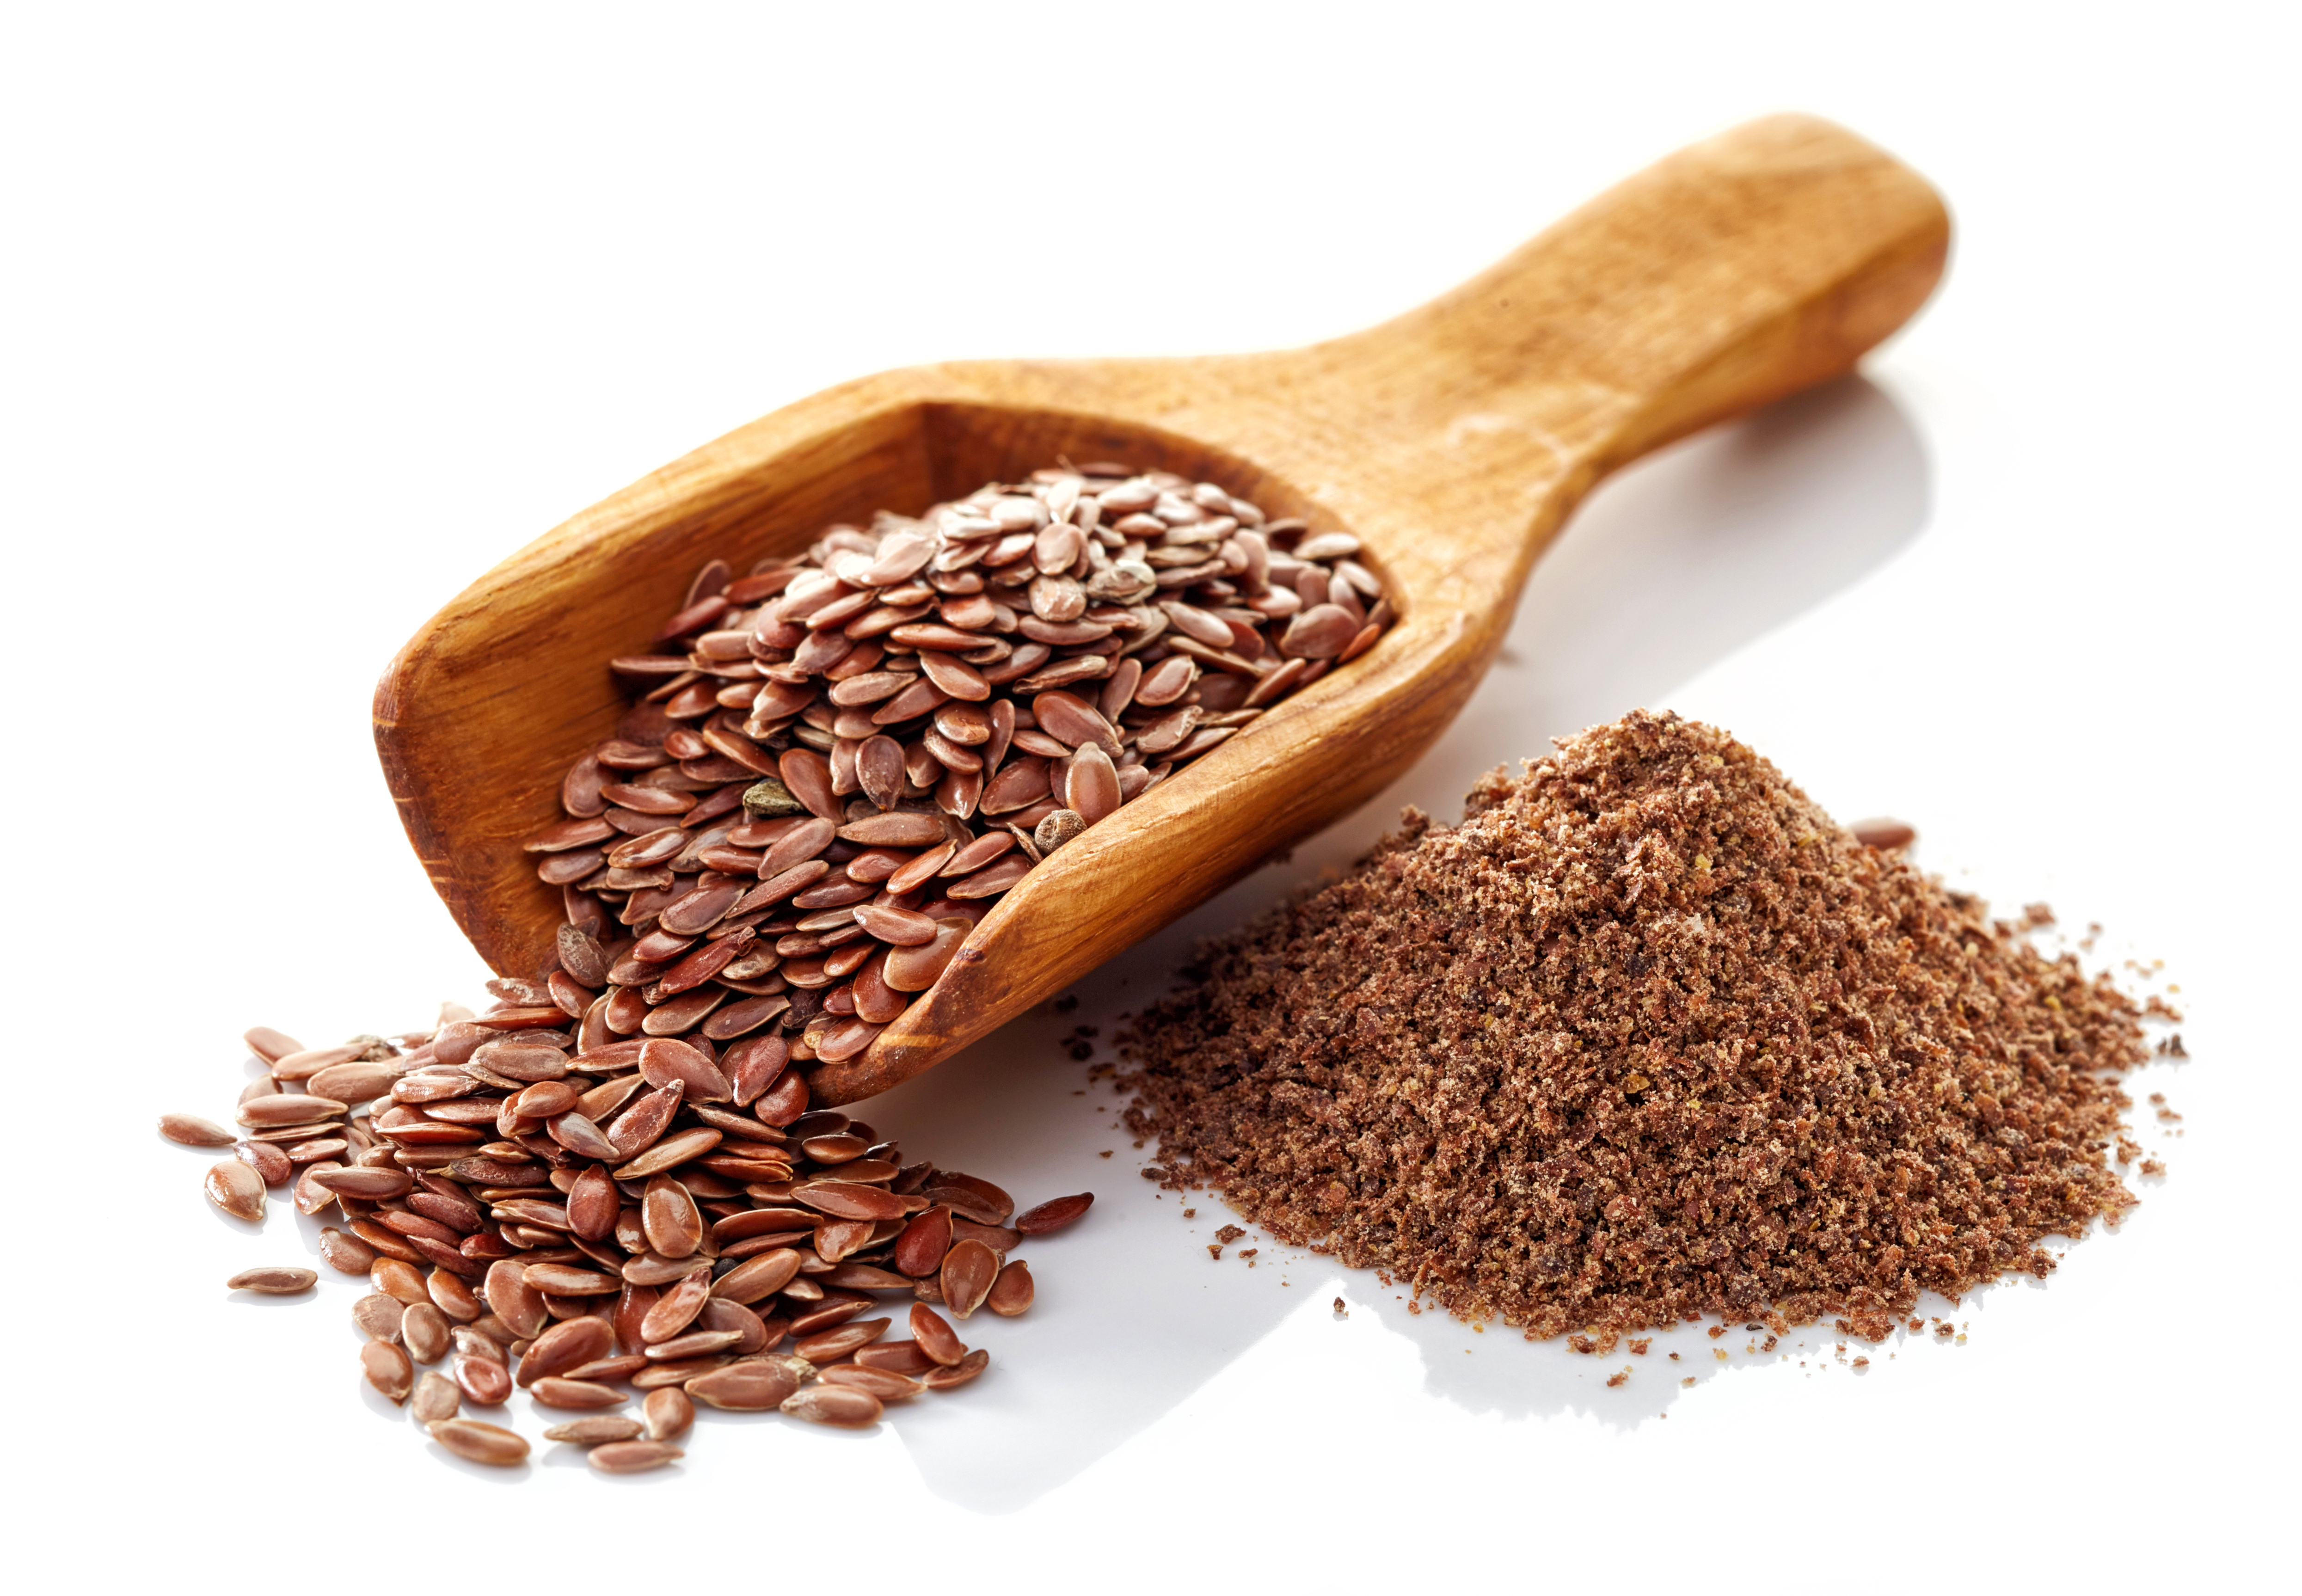 How to lose weight consuming flaxseeds?